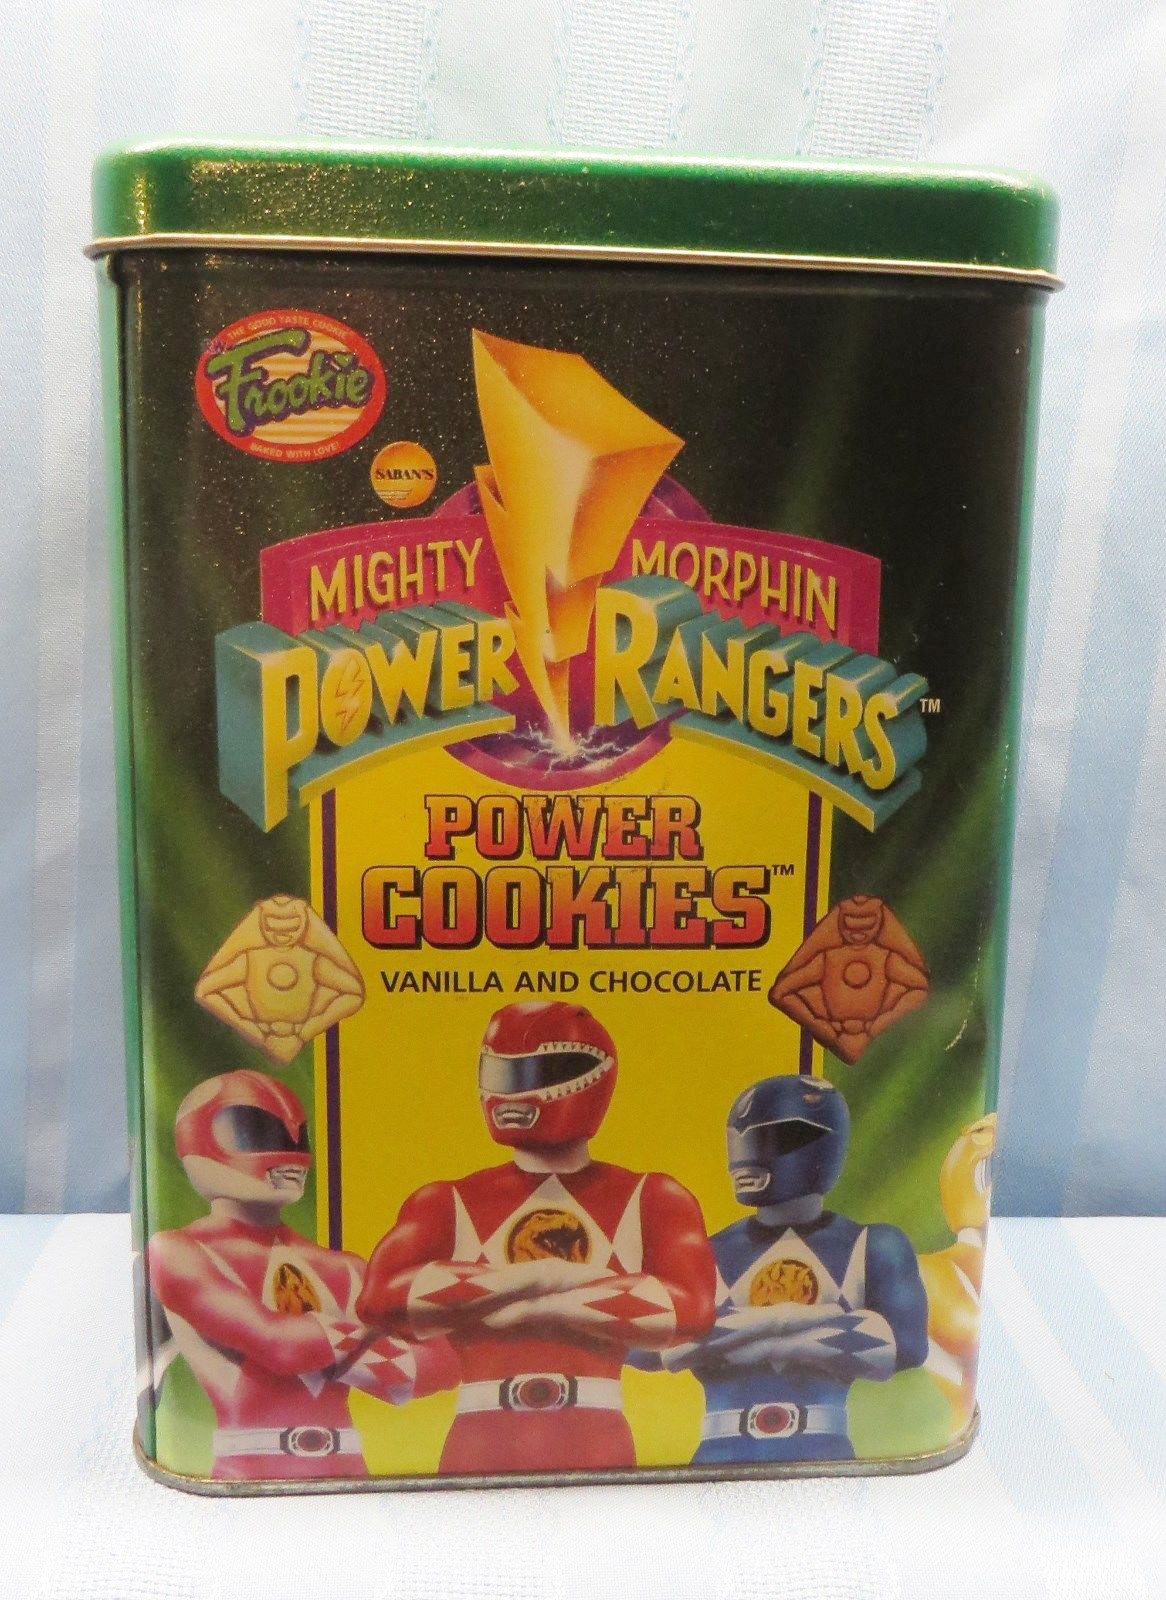 Power Cookies tin